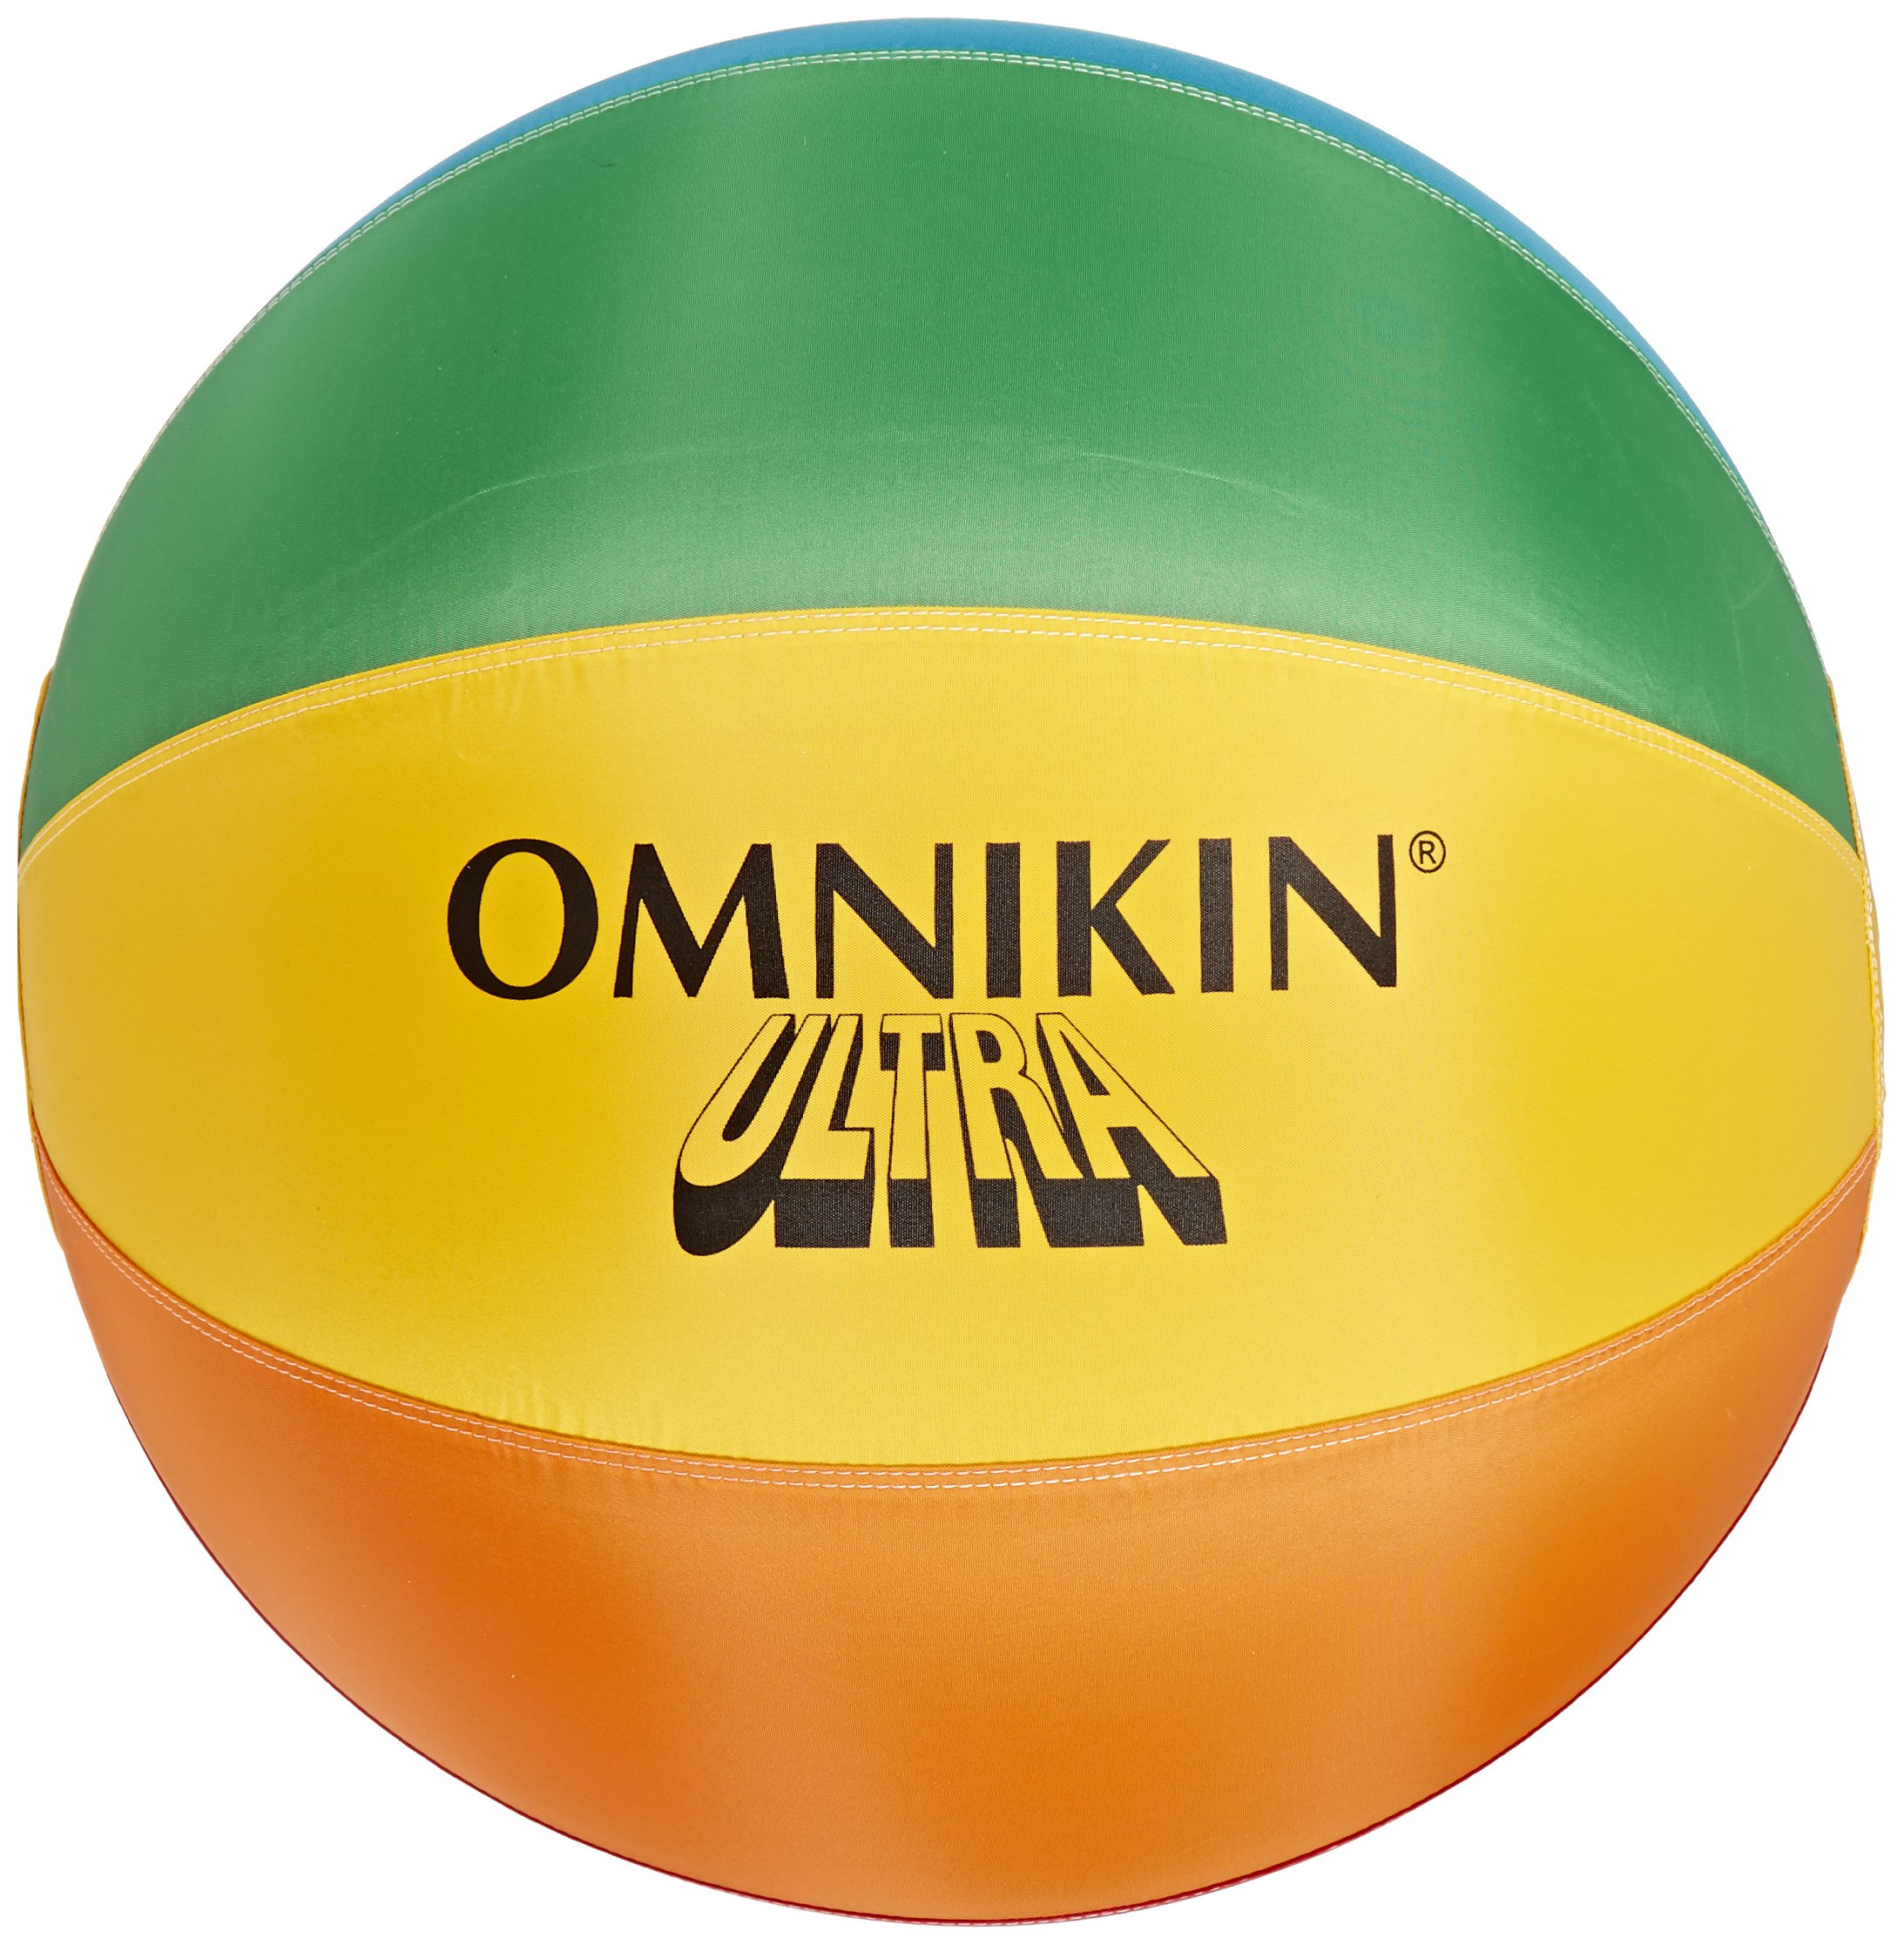 OMNIKIN Multiple Colors Ultra Ball with Water Resistant Coating, 24'' Diameter by Omnikin